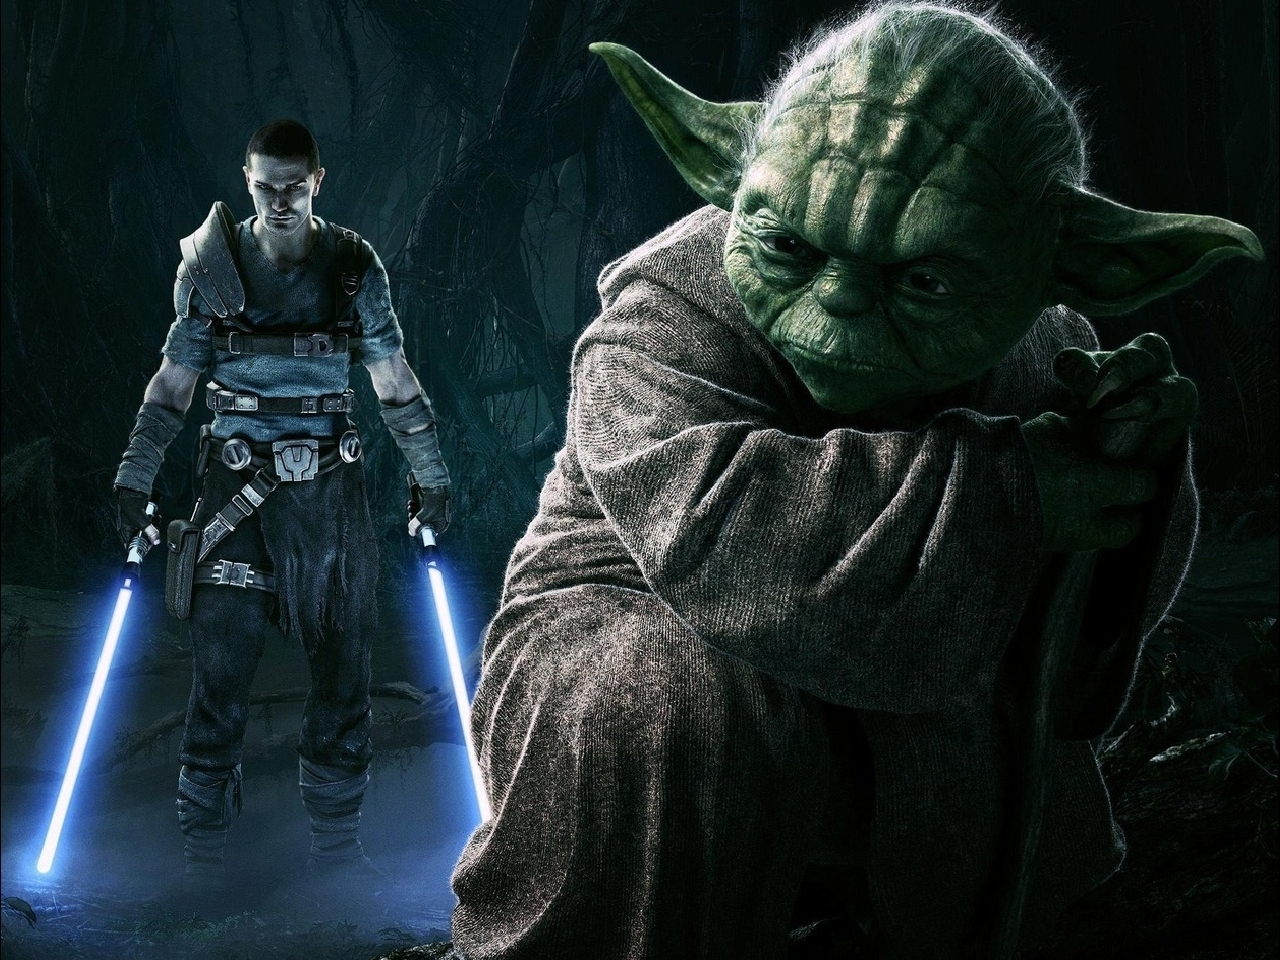 24740 download wallpaper Actors, Cinema, People, Star Wars, Master Yoda screensavers and pictures for free